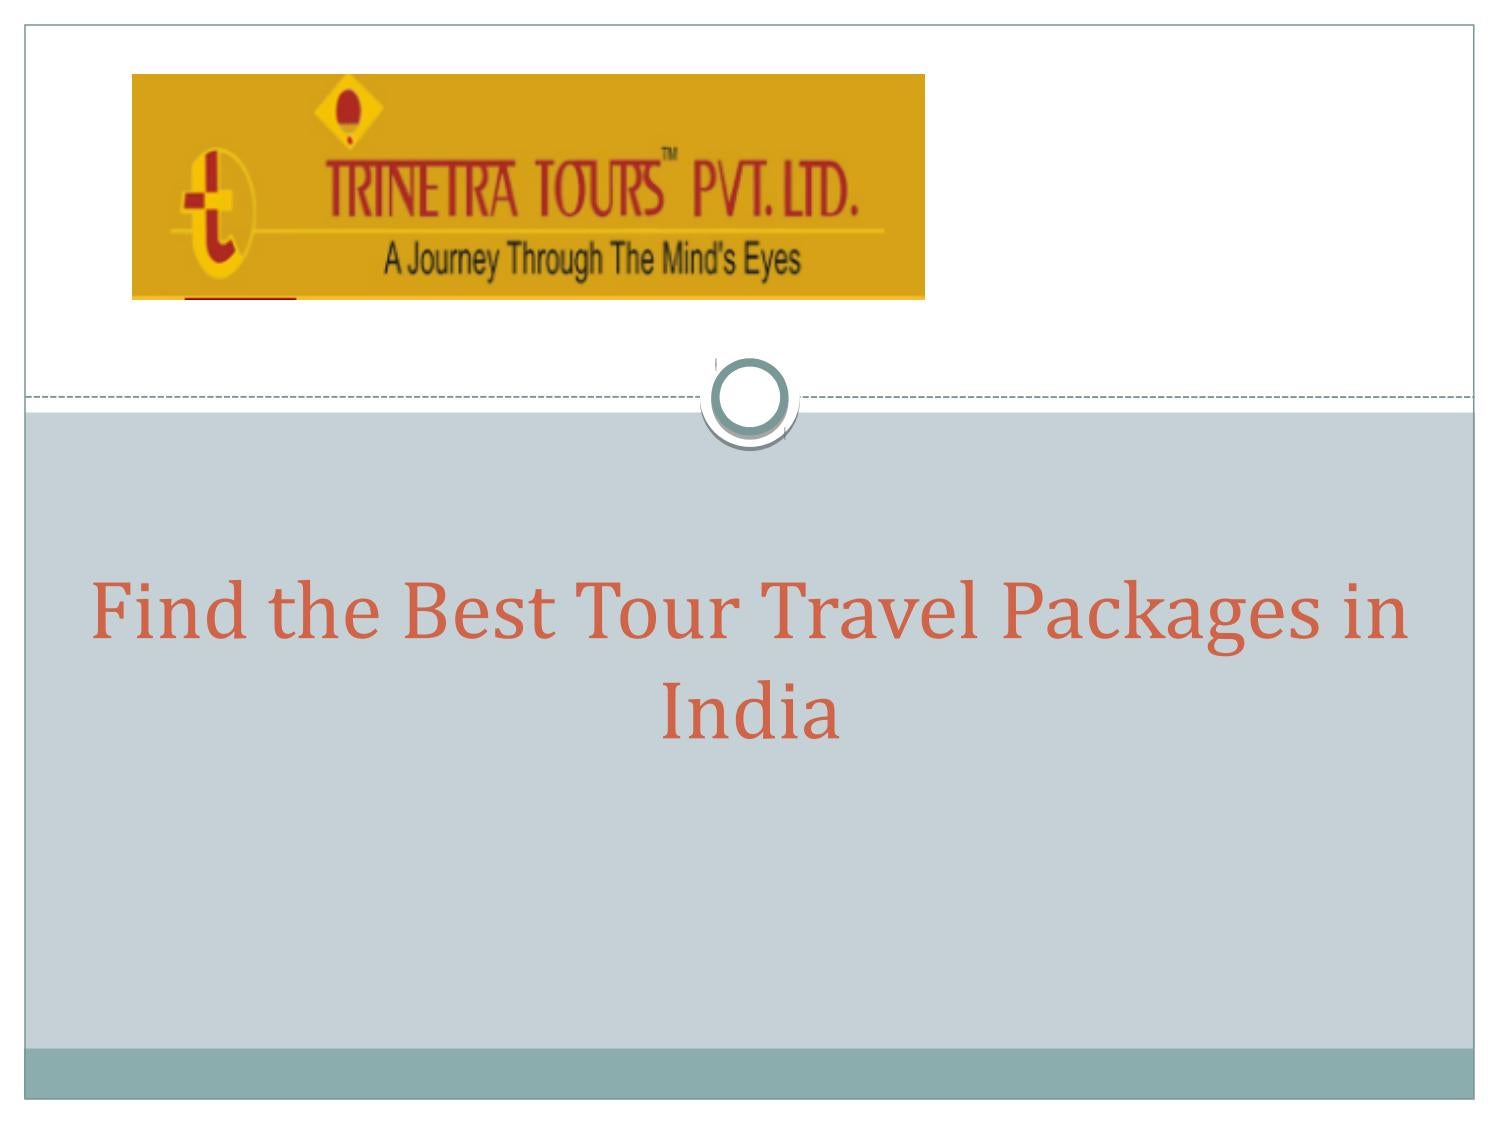 Find The Best Tour Travel Packages in India